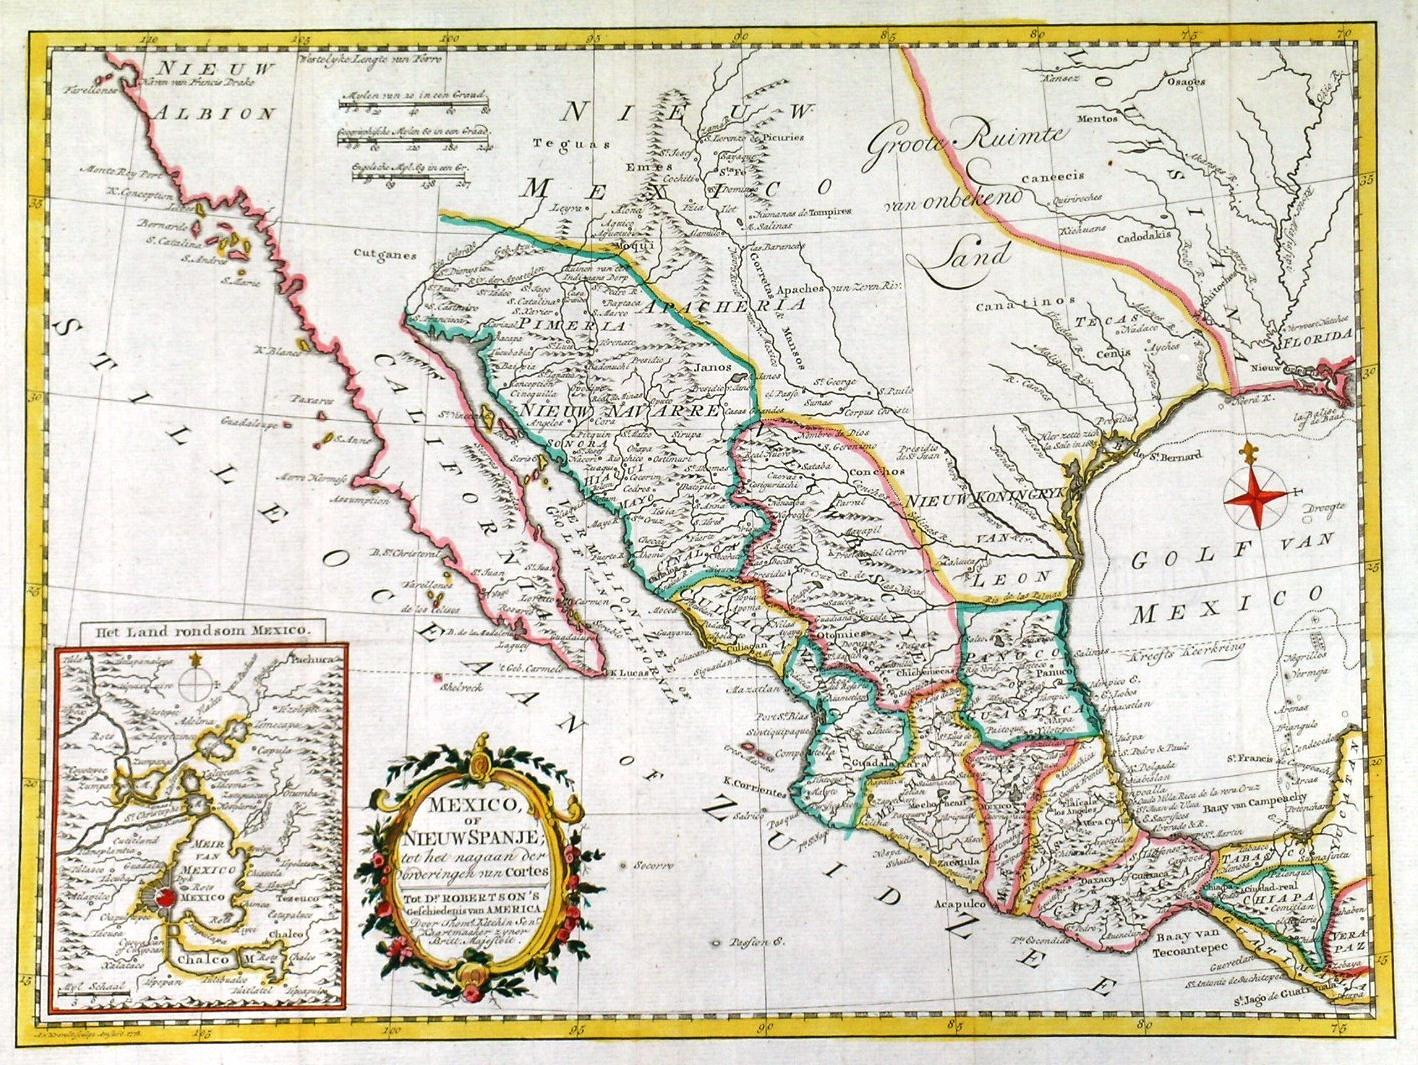 Mexico Of Nieuw Spanje Map Of Mexico The Southern States Of Texas And Louisiana Etc And California Showing Above Tecas A Groote Ruimte Van Onbekend Land Great Expanse Of Unknown